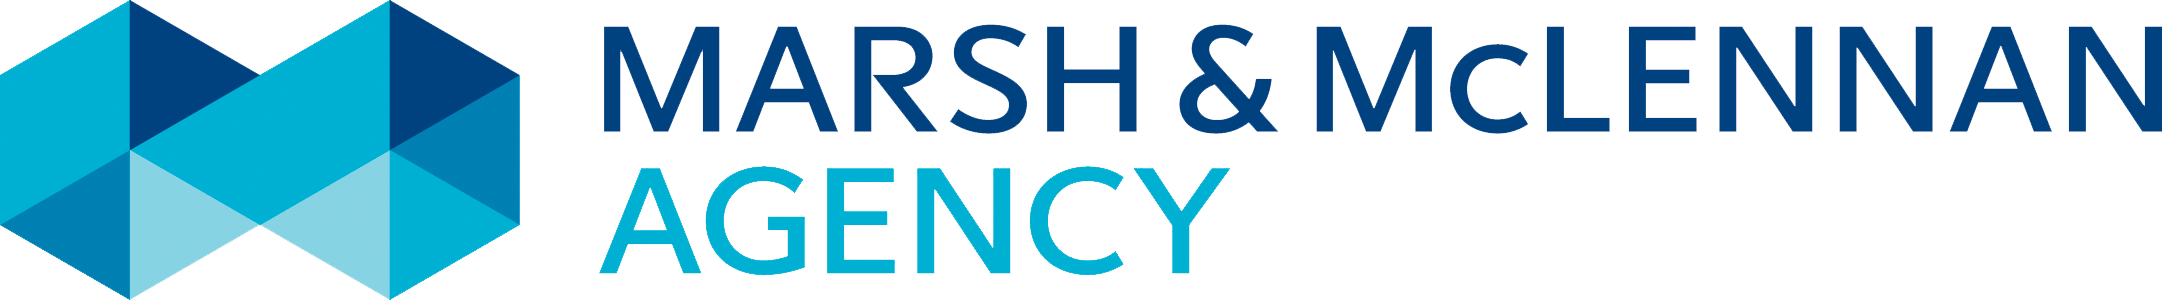 The Marsh McLennan Agency logo.